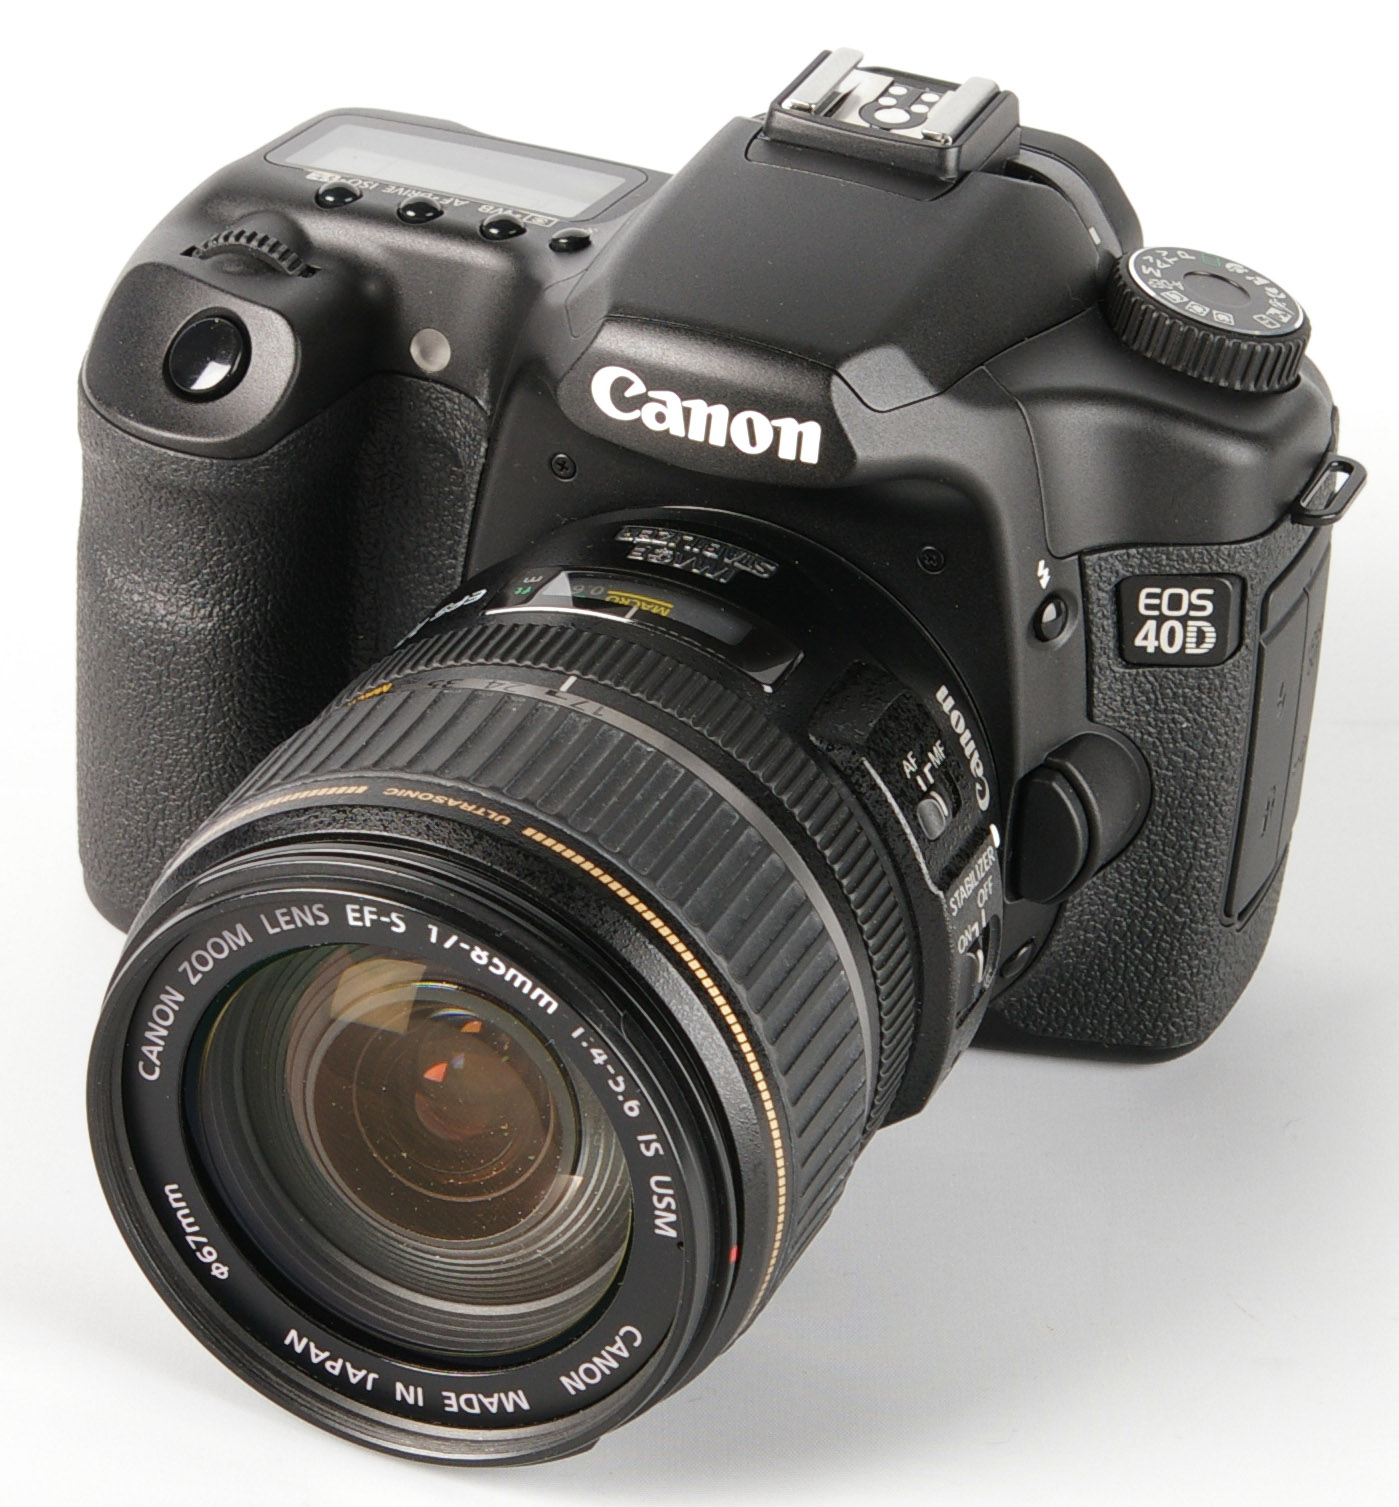 Canon 40D 17-85mm LENS KIT